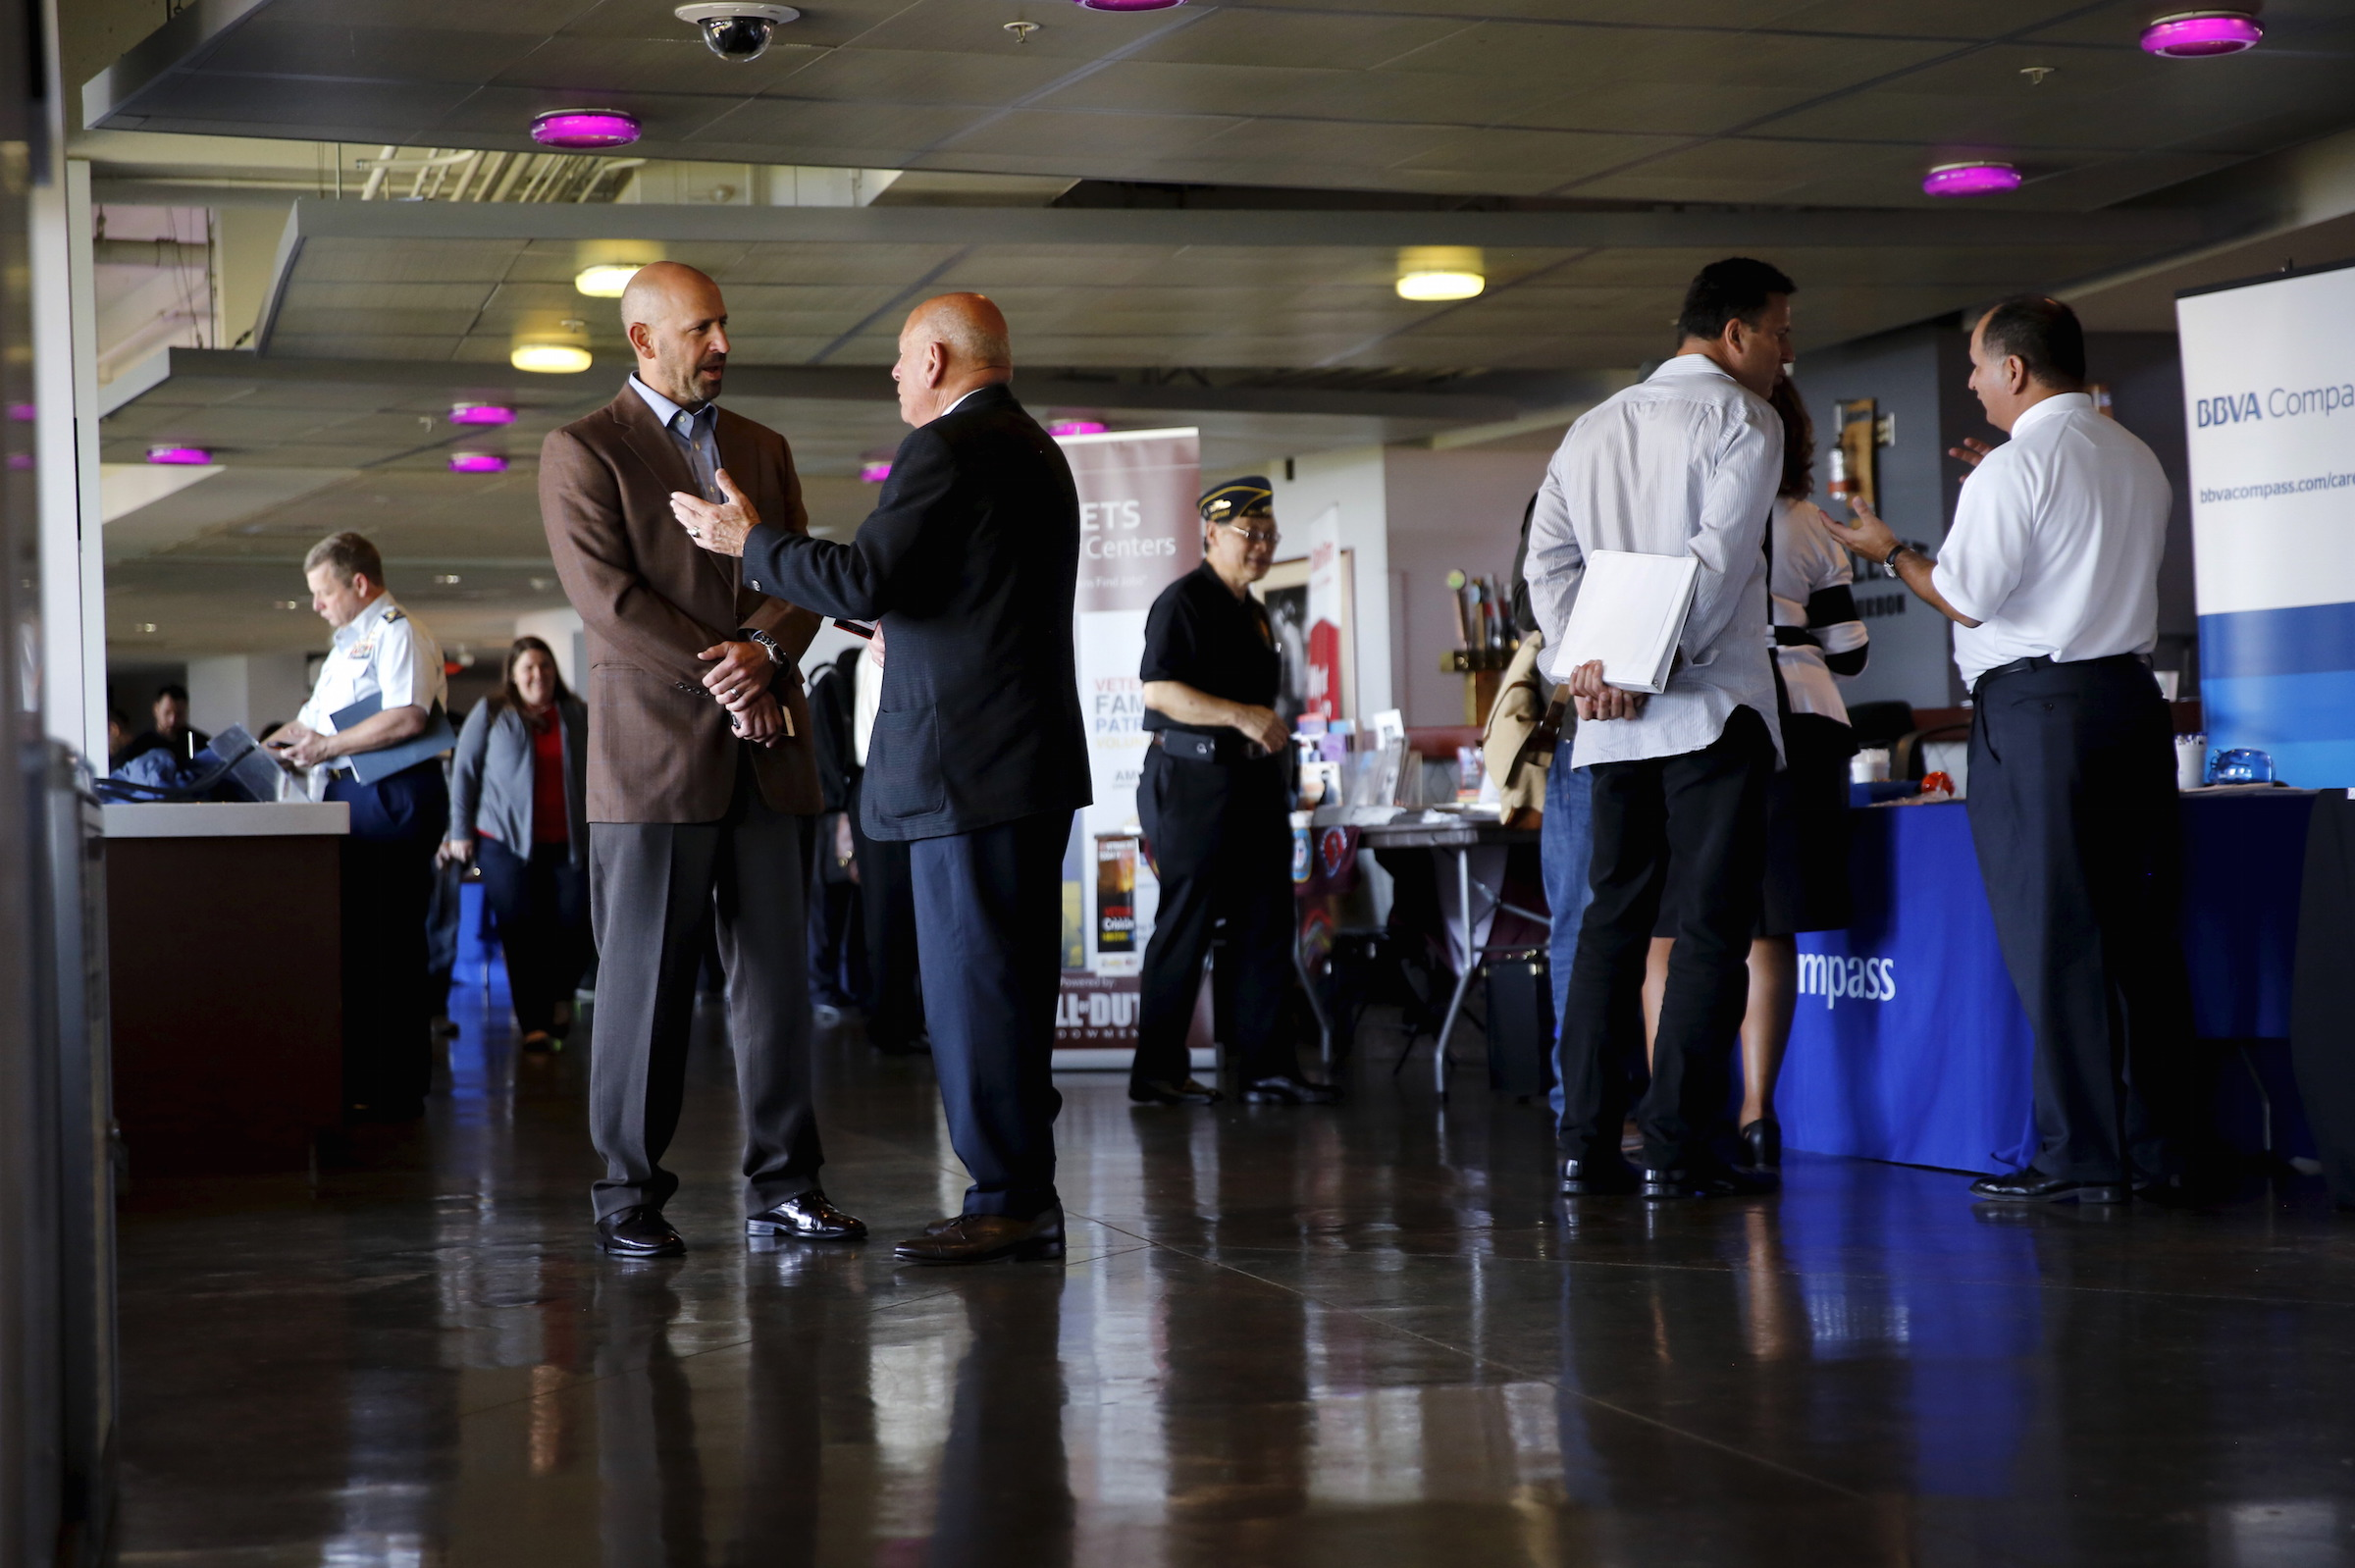 Recruiters and job seekers gather at a military job fair in San Francisco, California August 25, 2015. The employment workshop, held by the U.S. Chamber of Commerce Foundation, attracted hundreds of veterans and 115 companies. REUTERS/Robert Galbraith - RTX1PN84